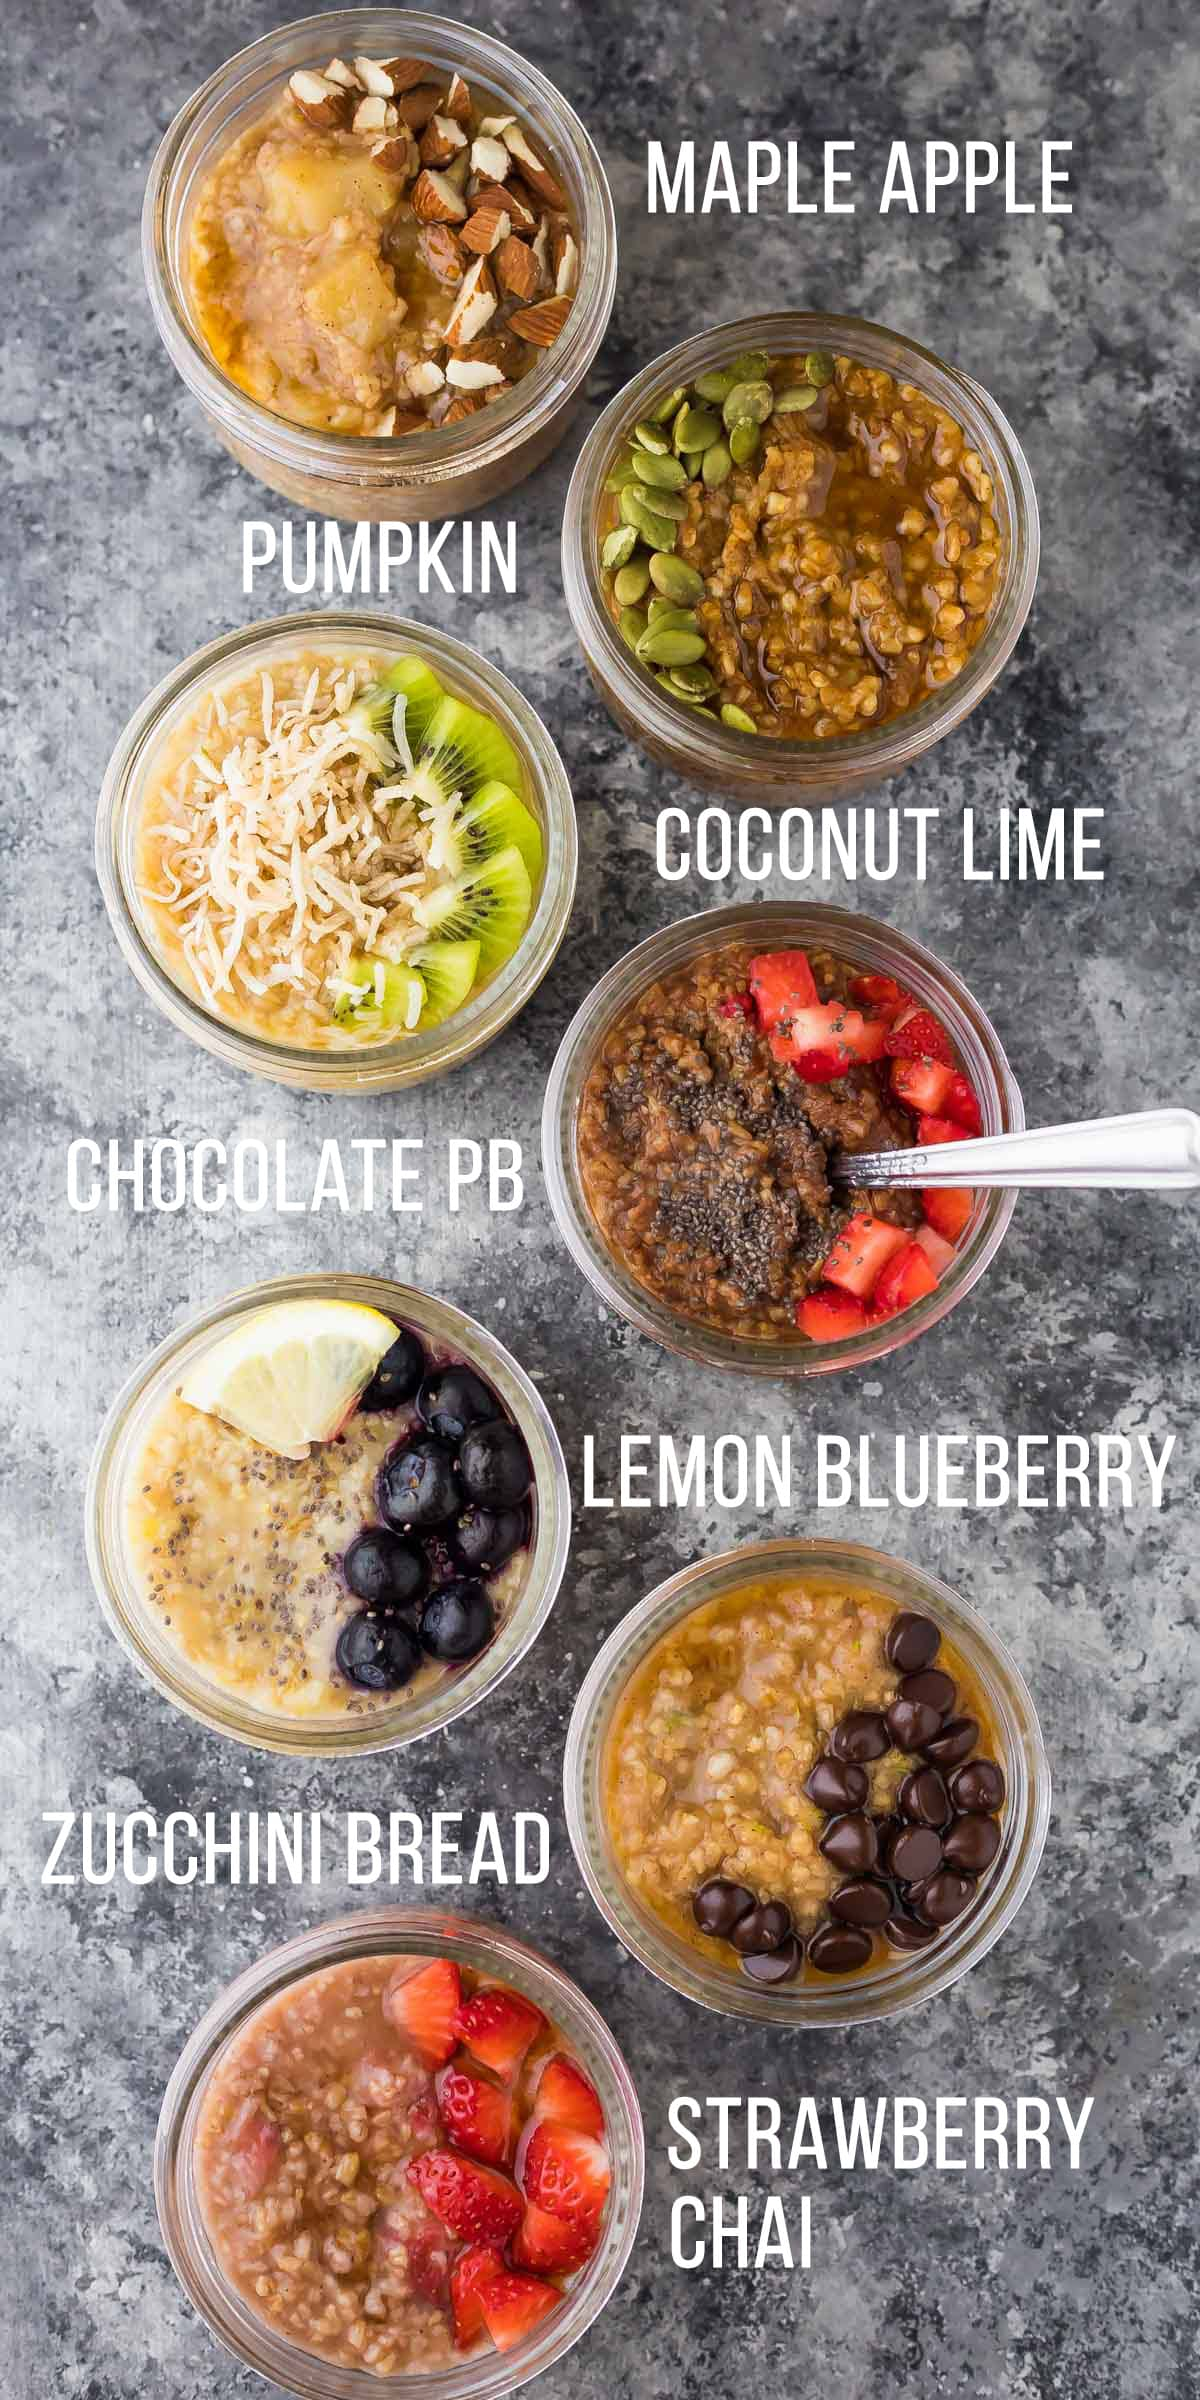 7 cups with various steel oat recipes